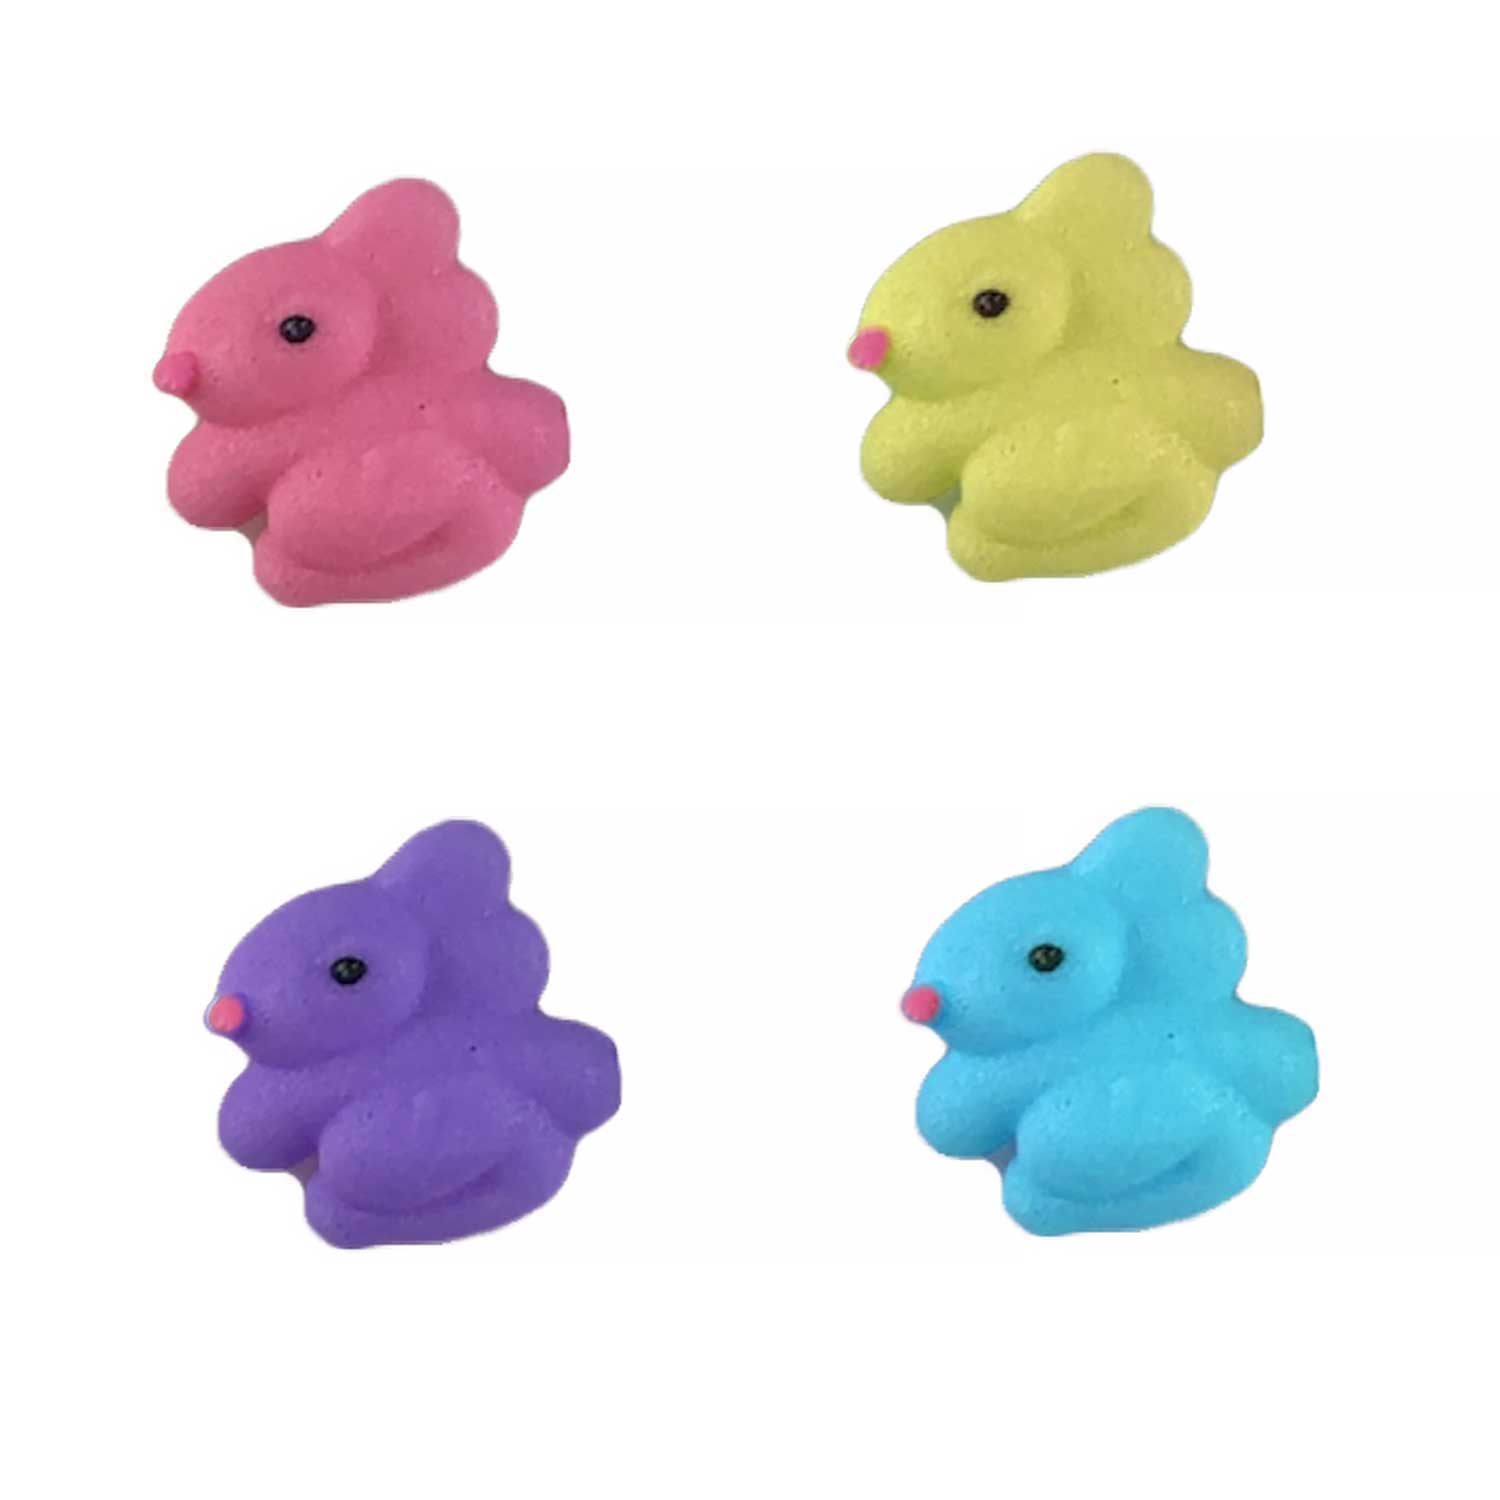 Icing Layons - Assorted Colors Small Bunny